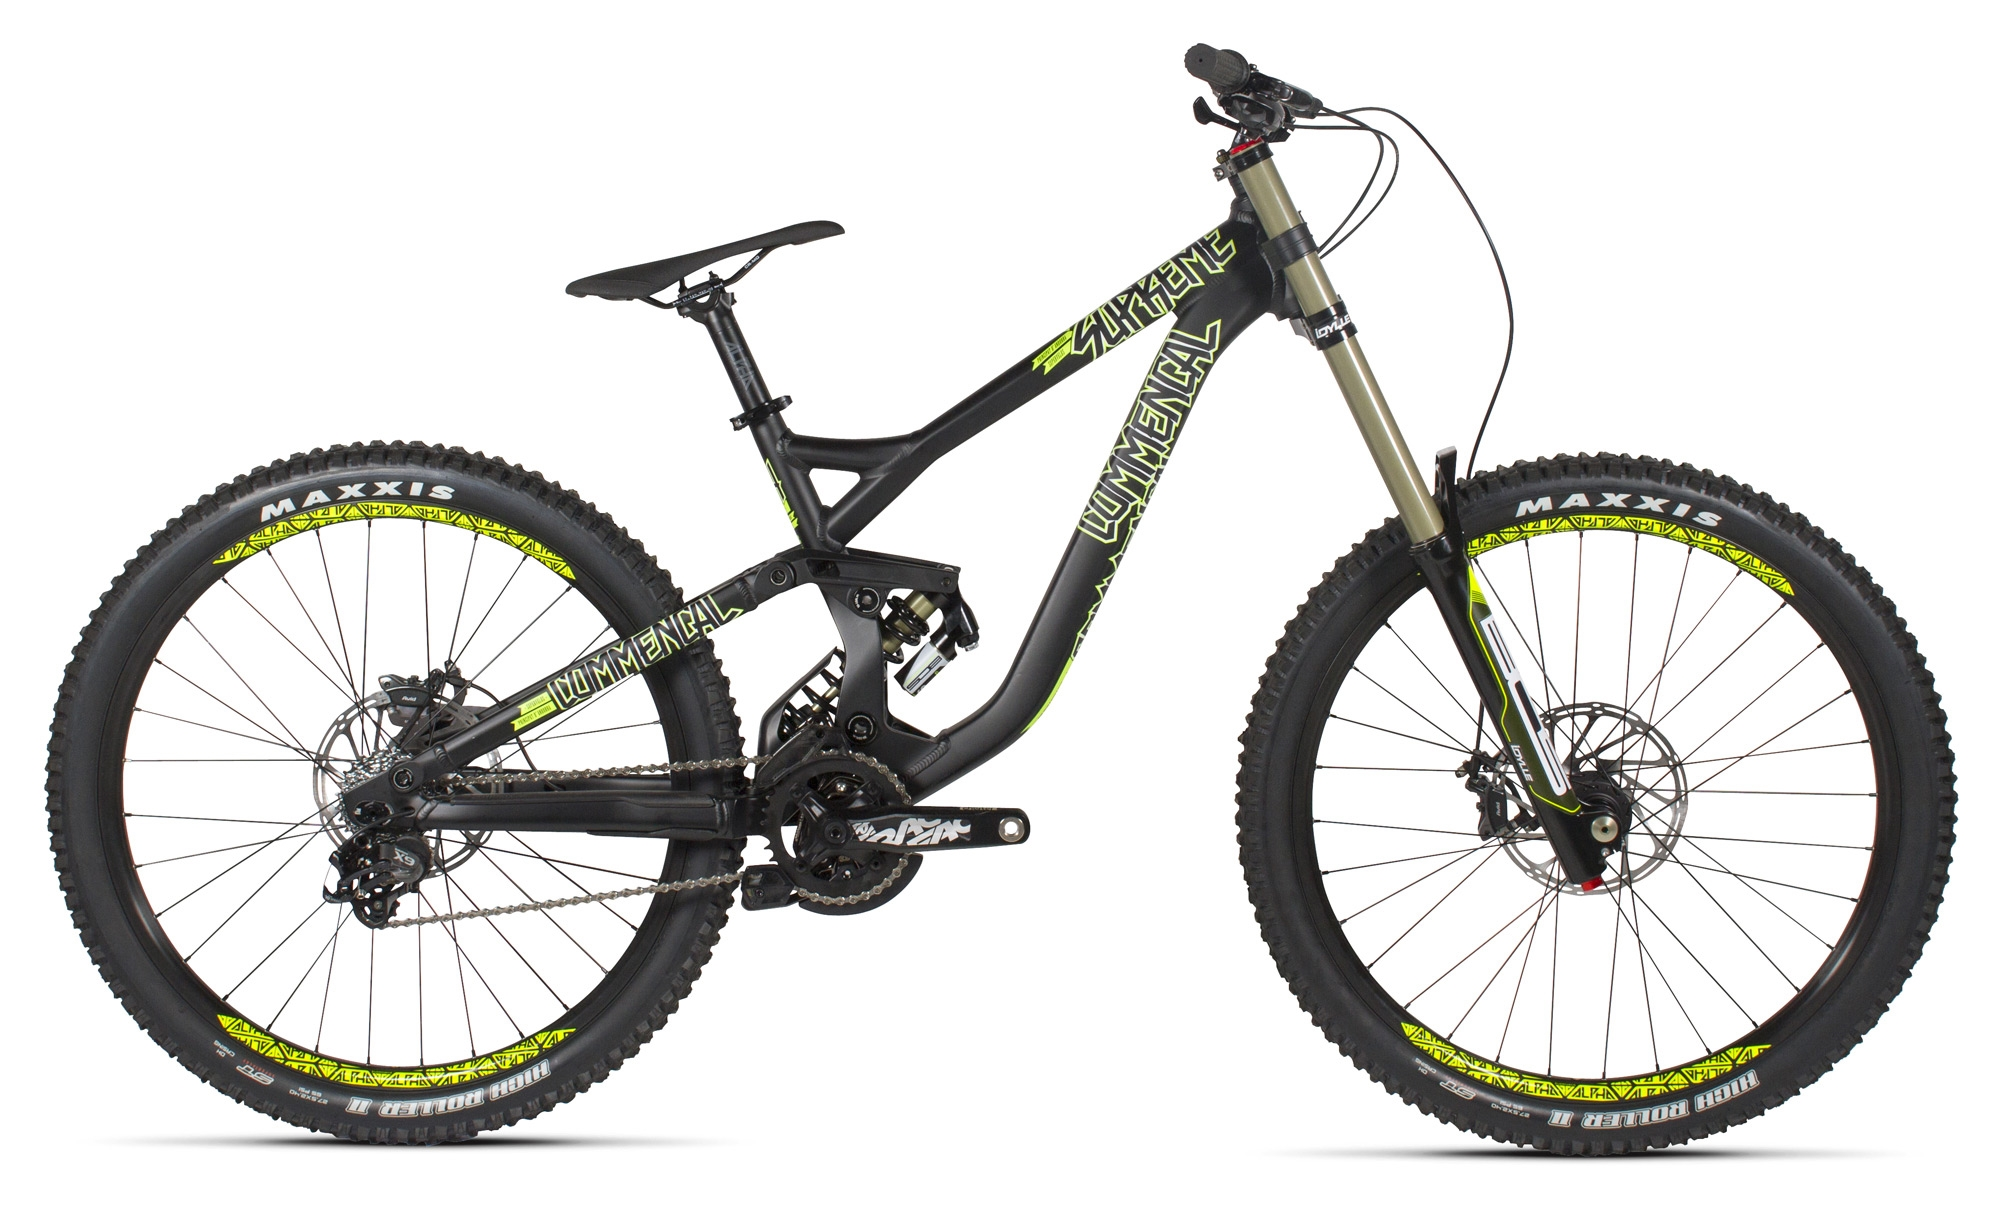 Cyclemaniax Der Commencal Bike Shop Servicepartner Und